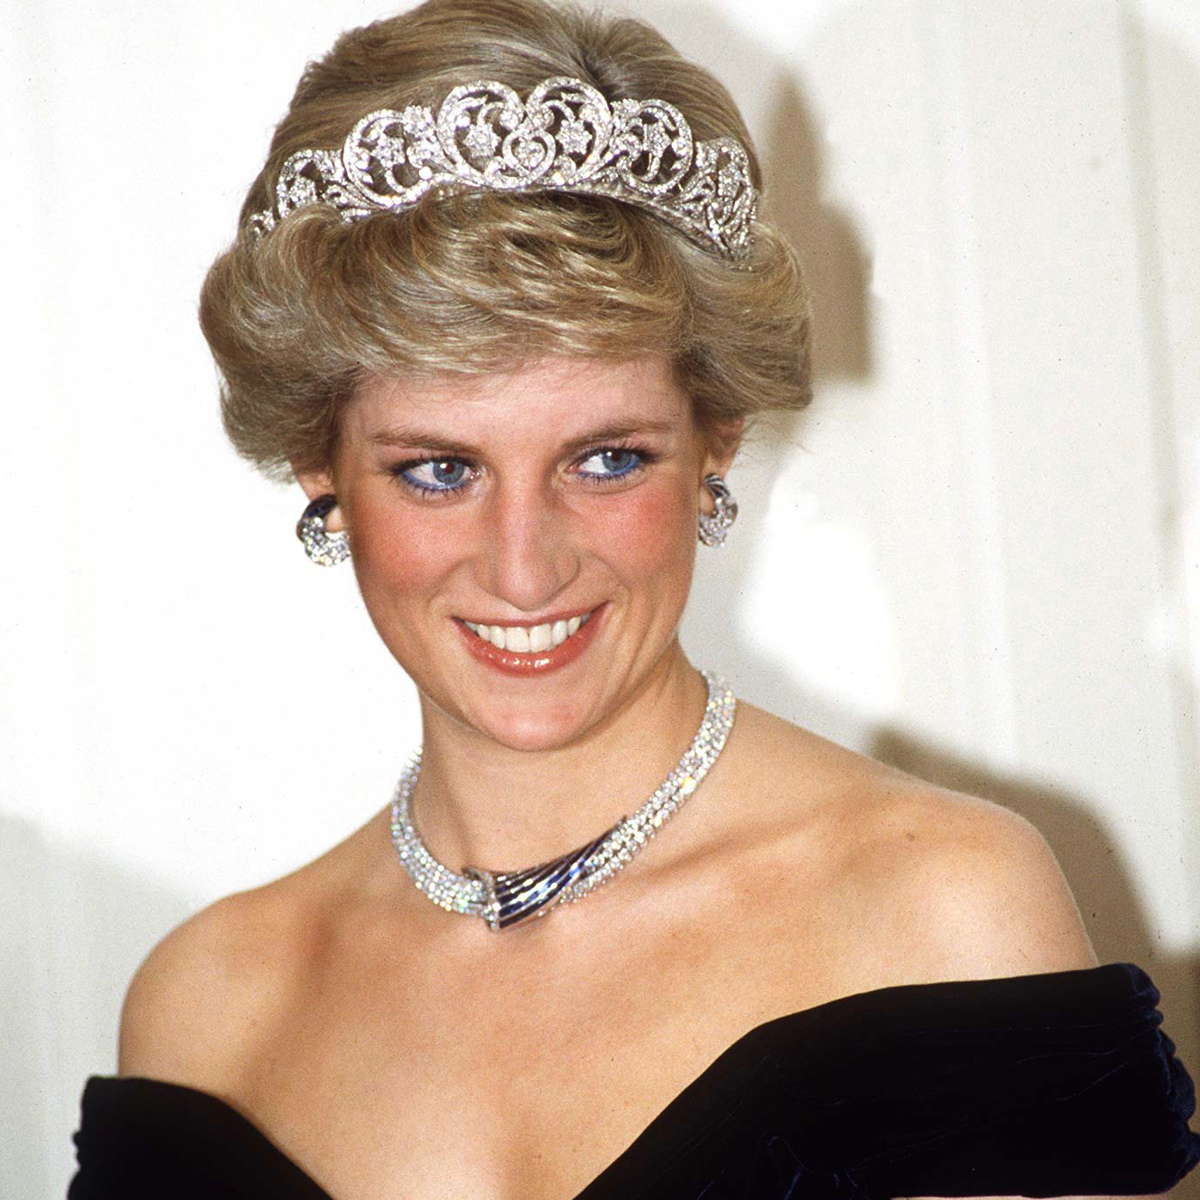 princess diana wearing black dress with tiara-blue eyeliner-skincare makeup and beauty secrets-120814-goodhousekeeping.co.uk